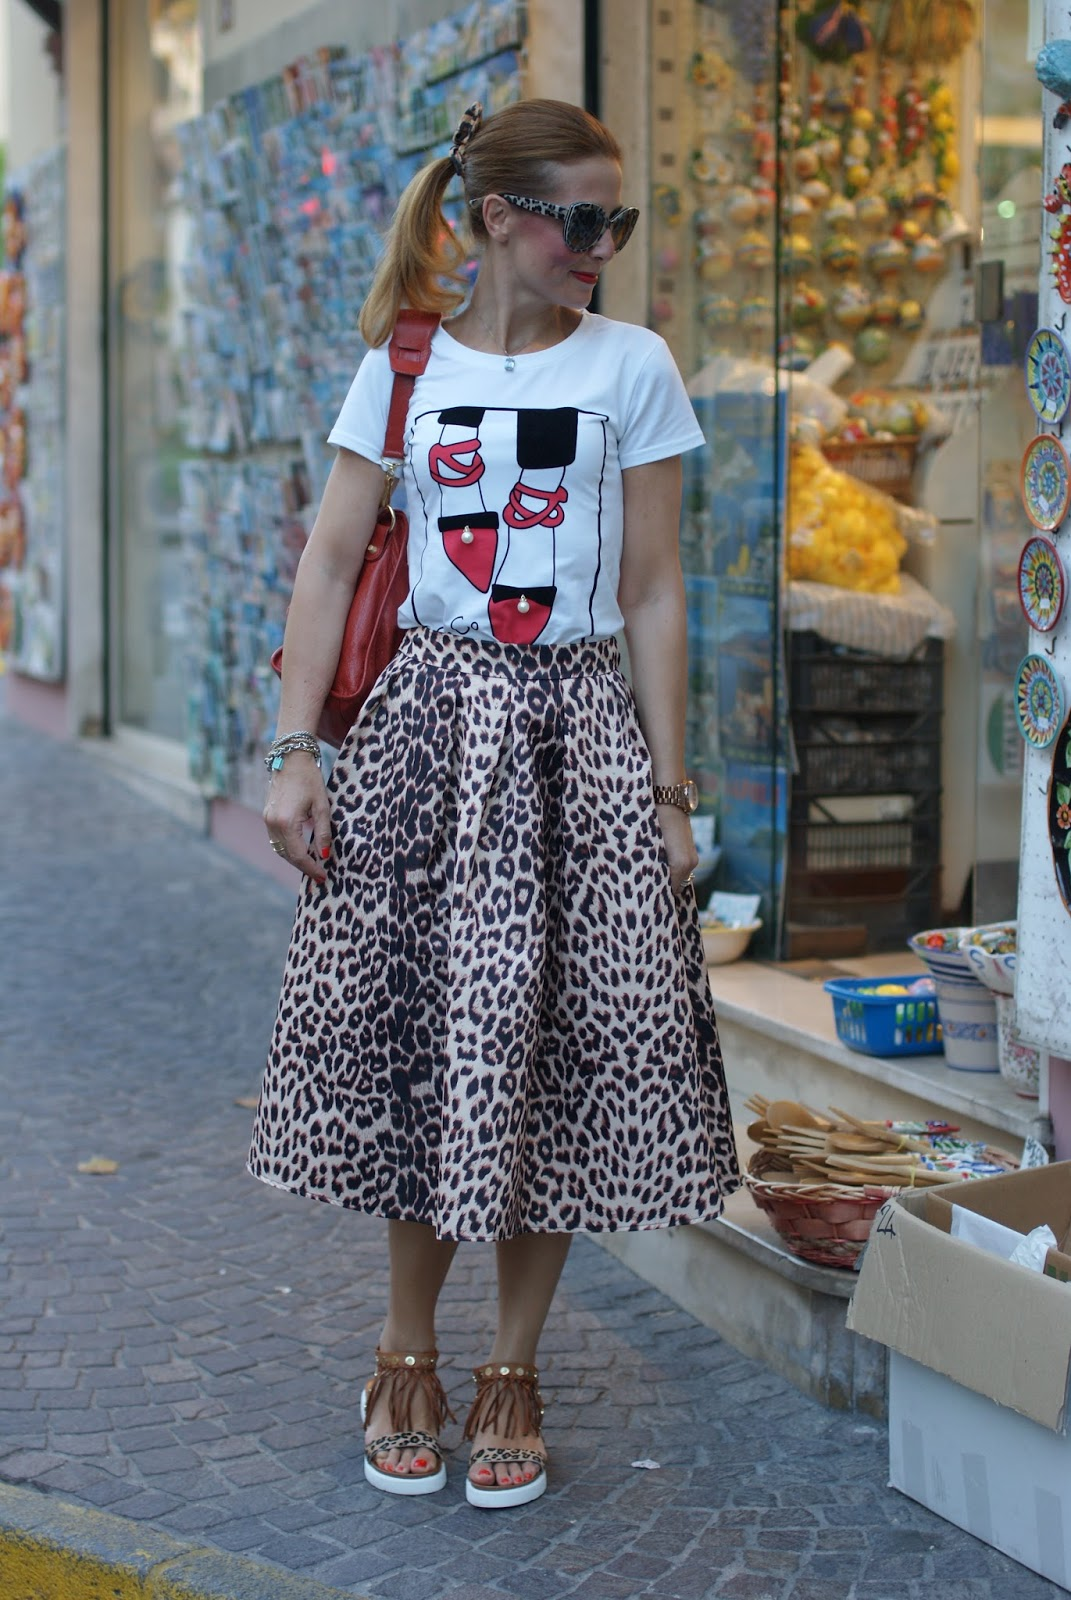 Leopard print is the new neutral with Dolce & Gabbana leopard sunglasses found on Giarre.com, leopard print midi skirt on Fashion and Cookies fashion blog, fashion blogger style